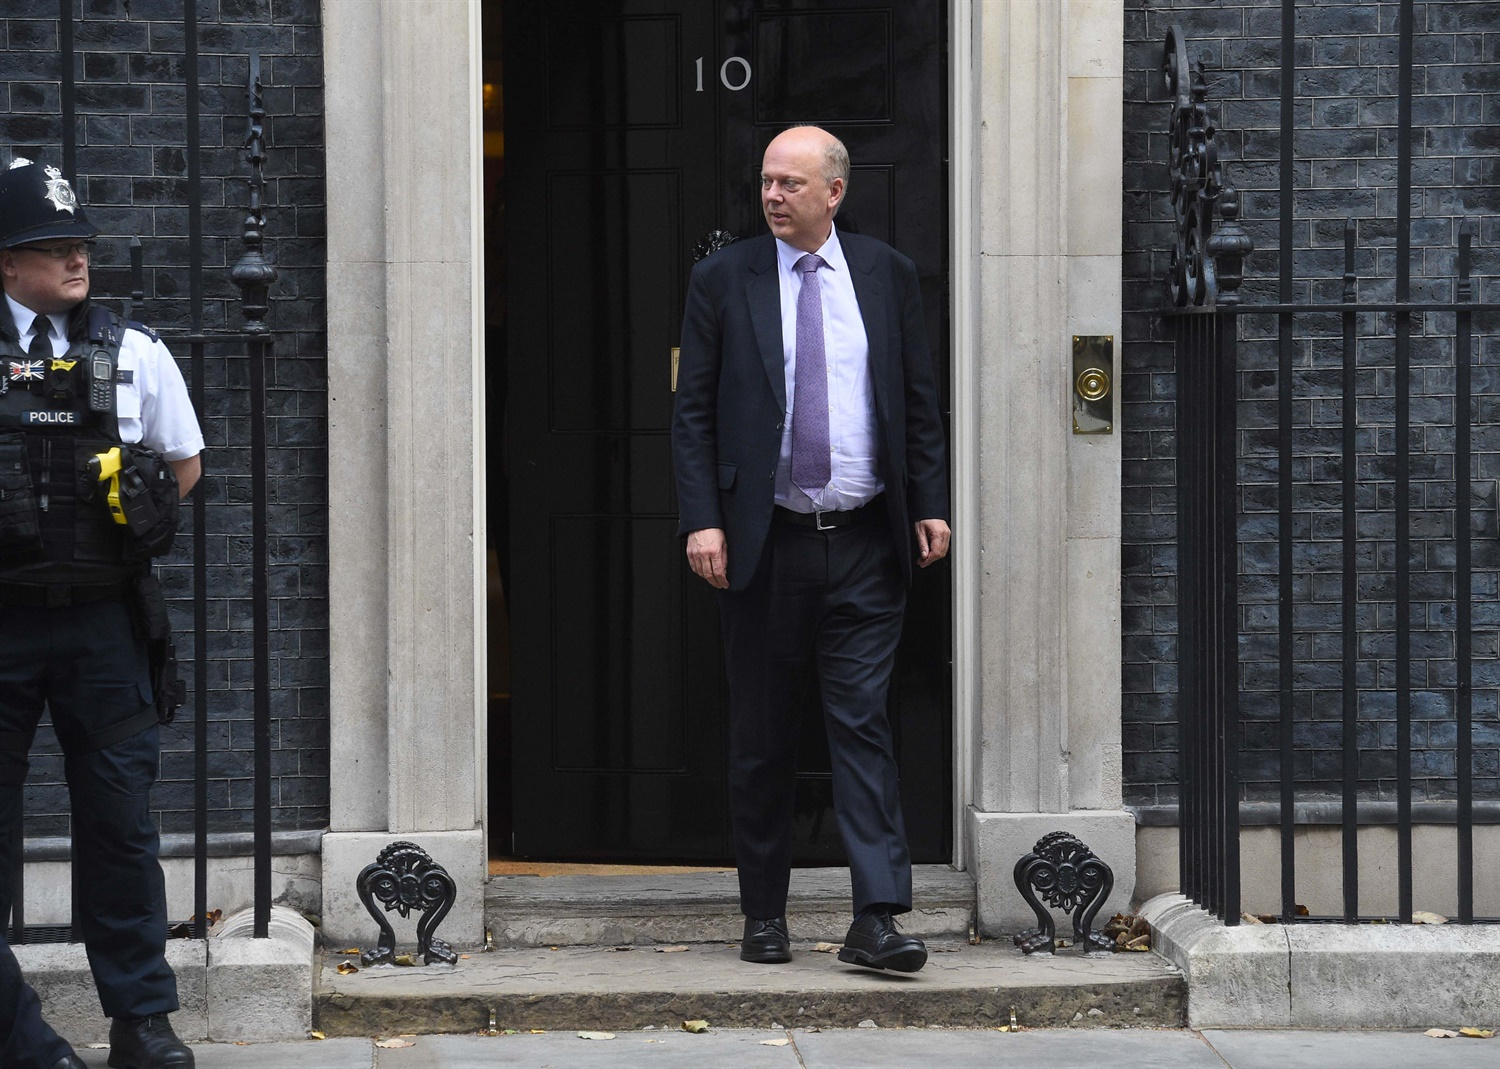 Grayling won't confirm halt to January fare rise, says TfL are in 'deep financial difficulties' due to Khan's fare freeze